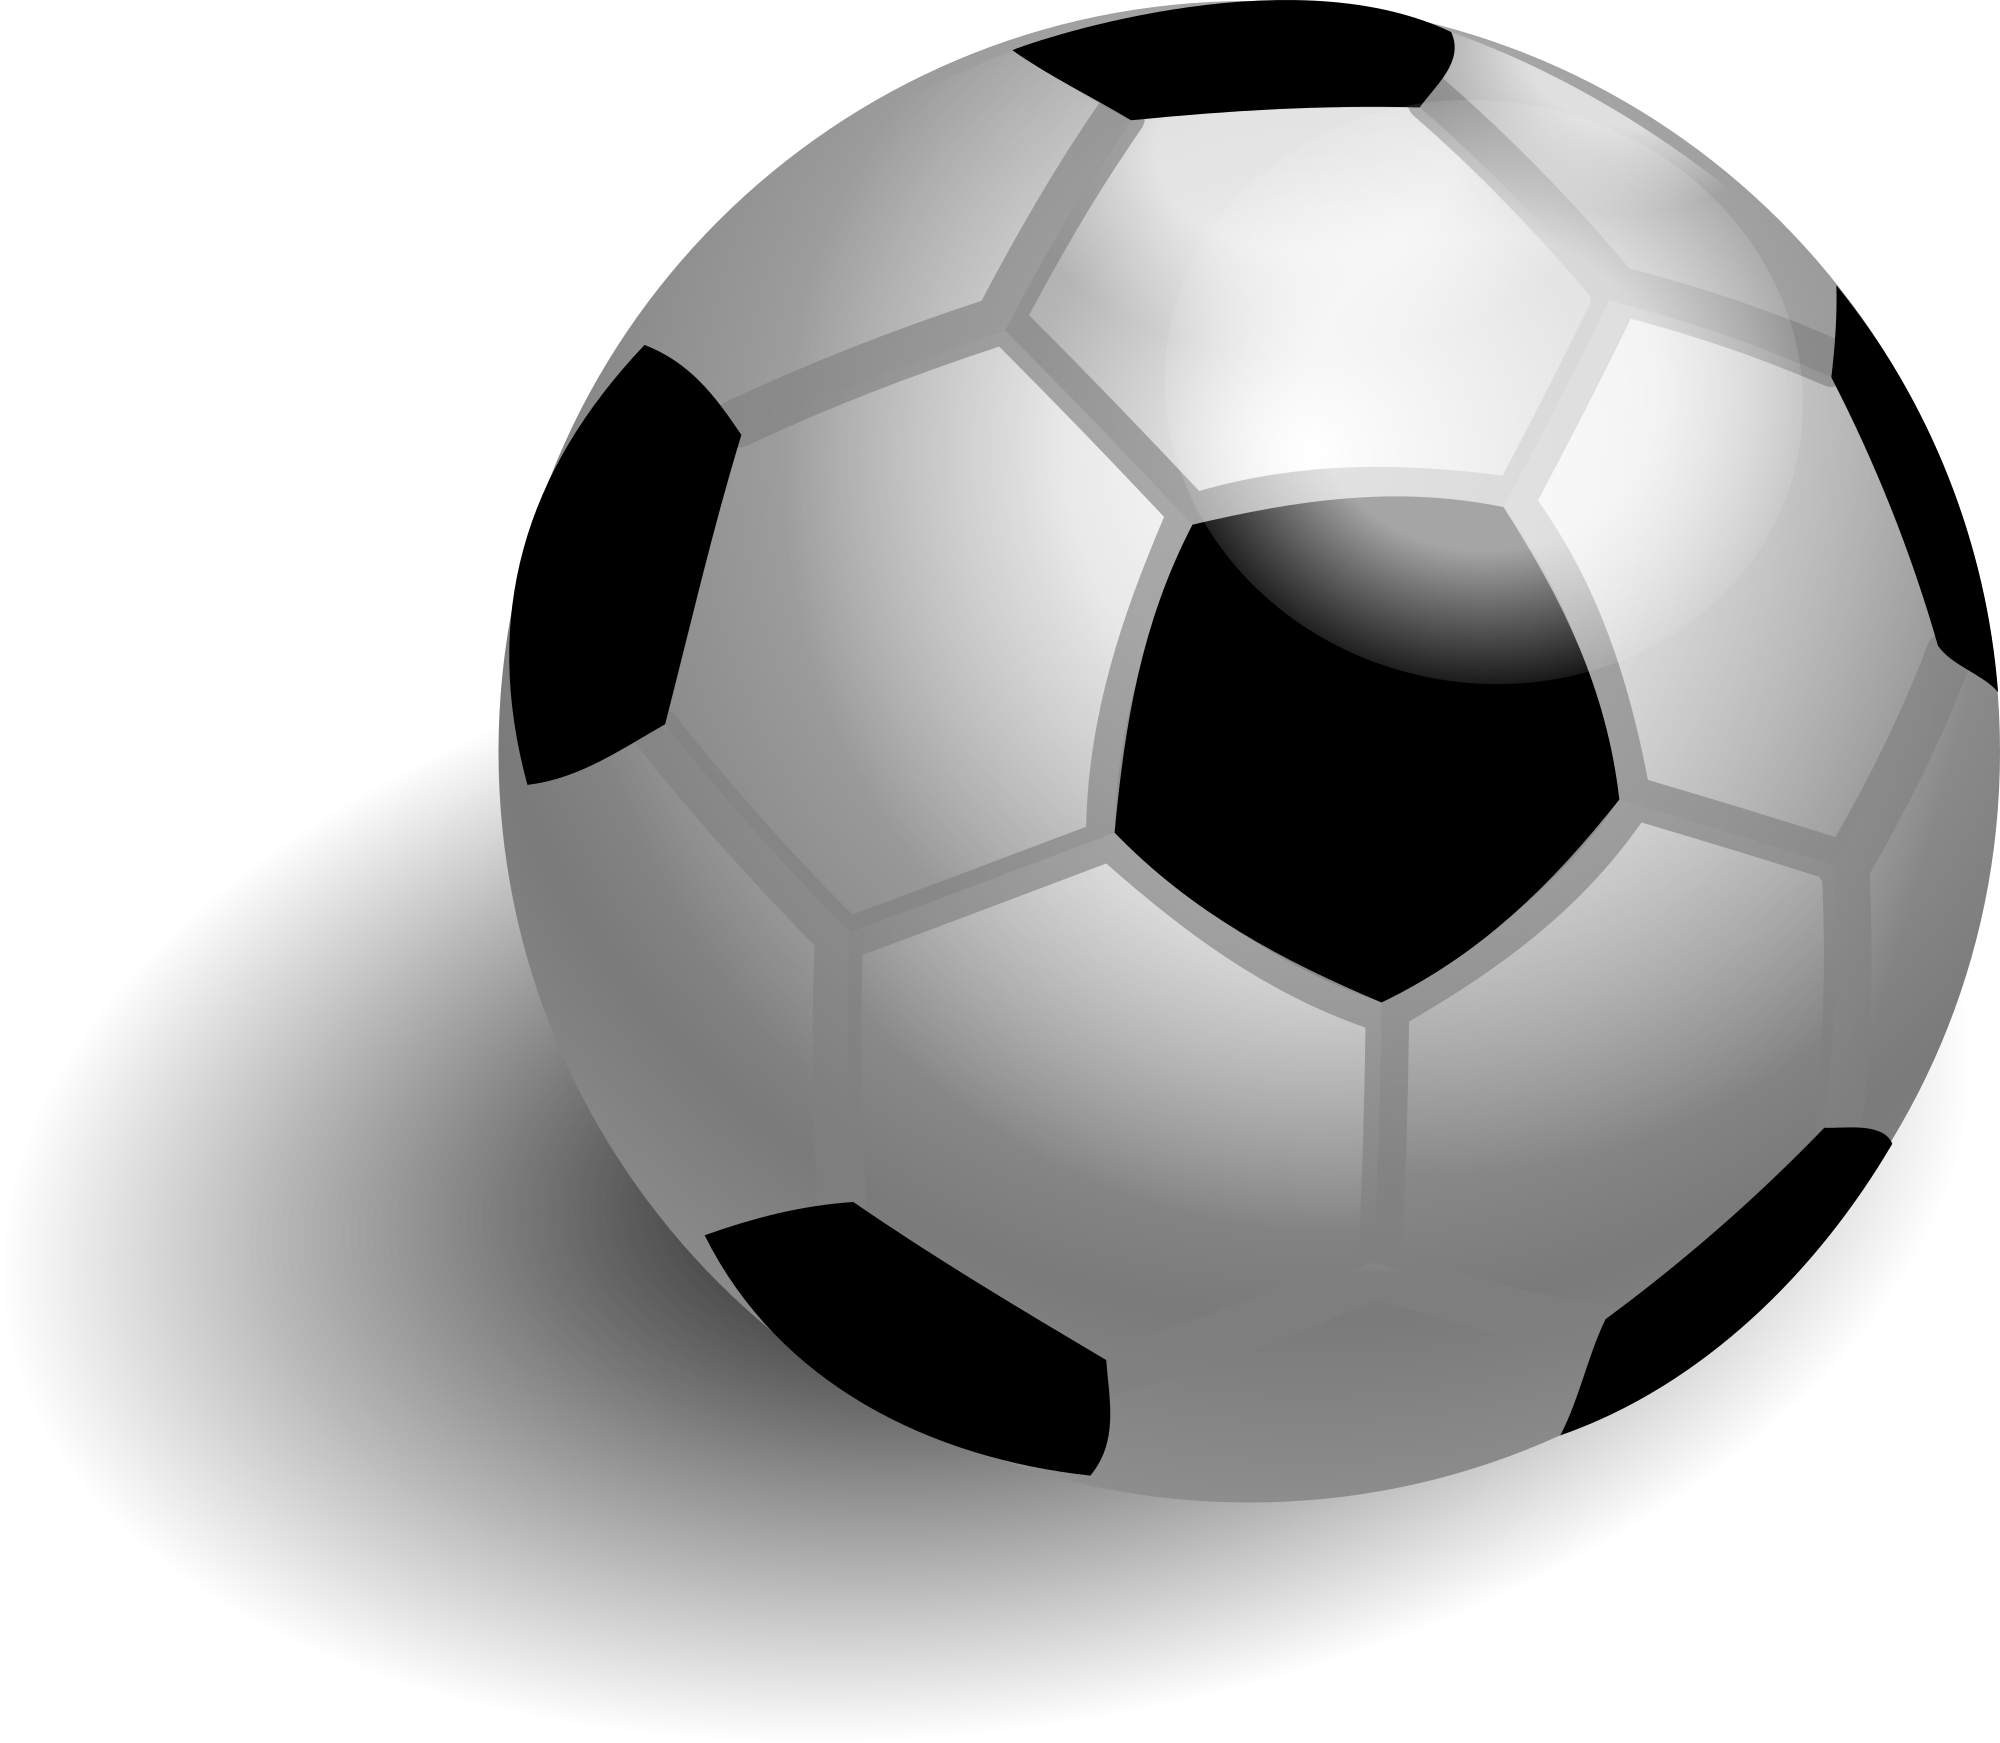 Pictures of Soccer Balls ClipArt in PNG - HD Wallpapers ...